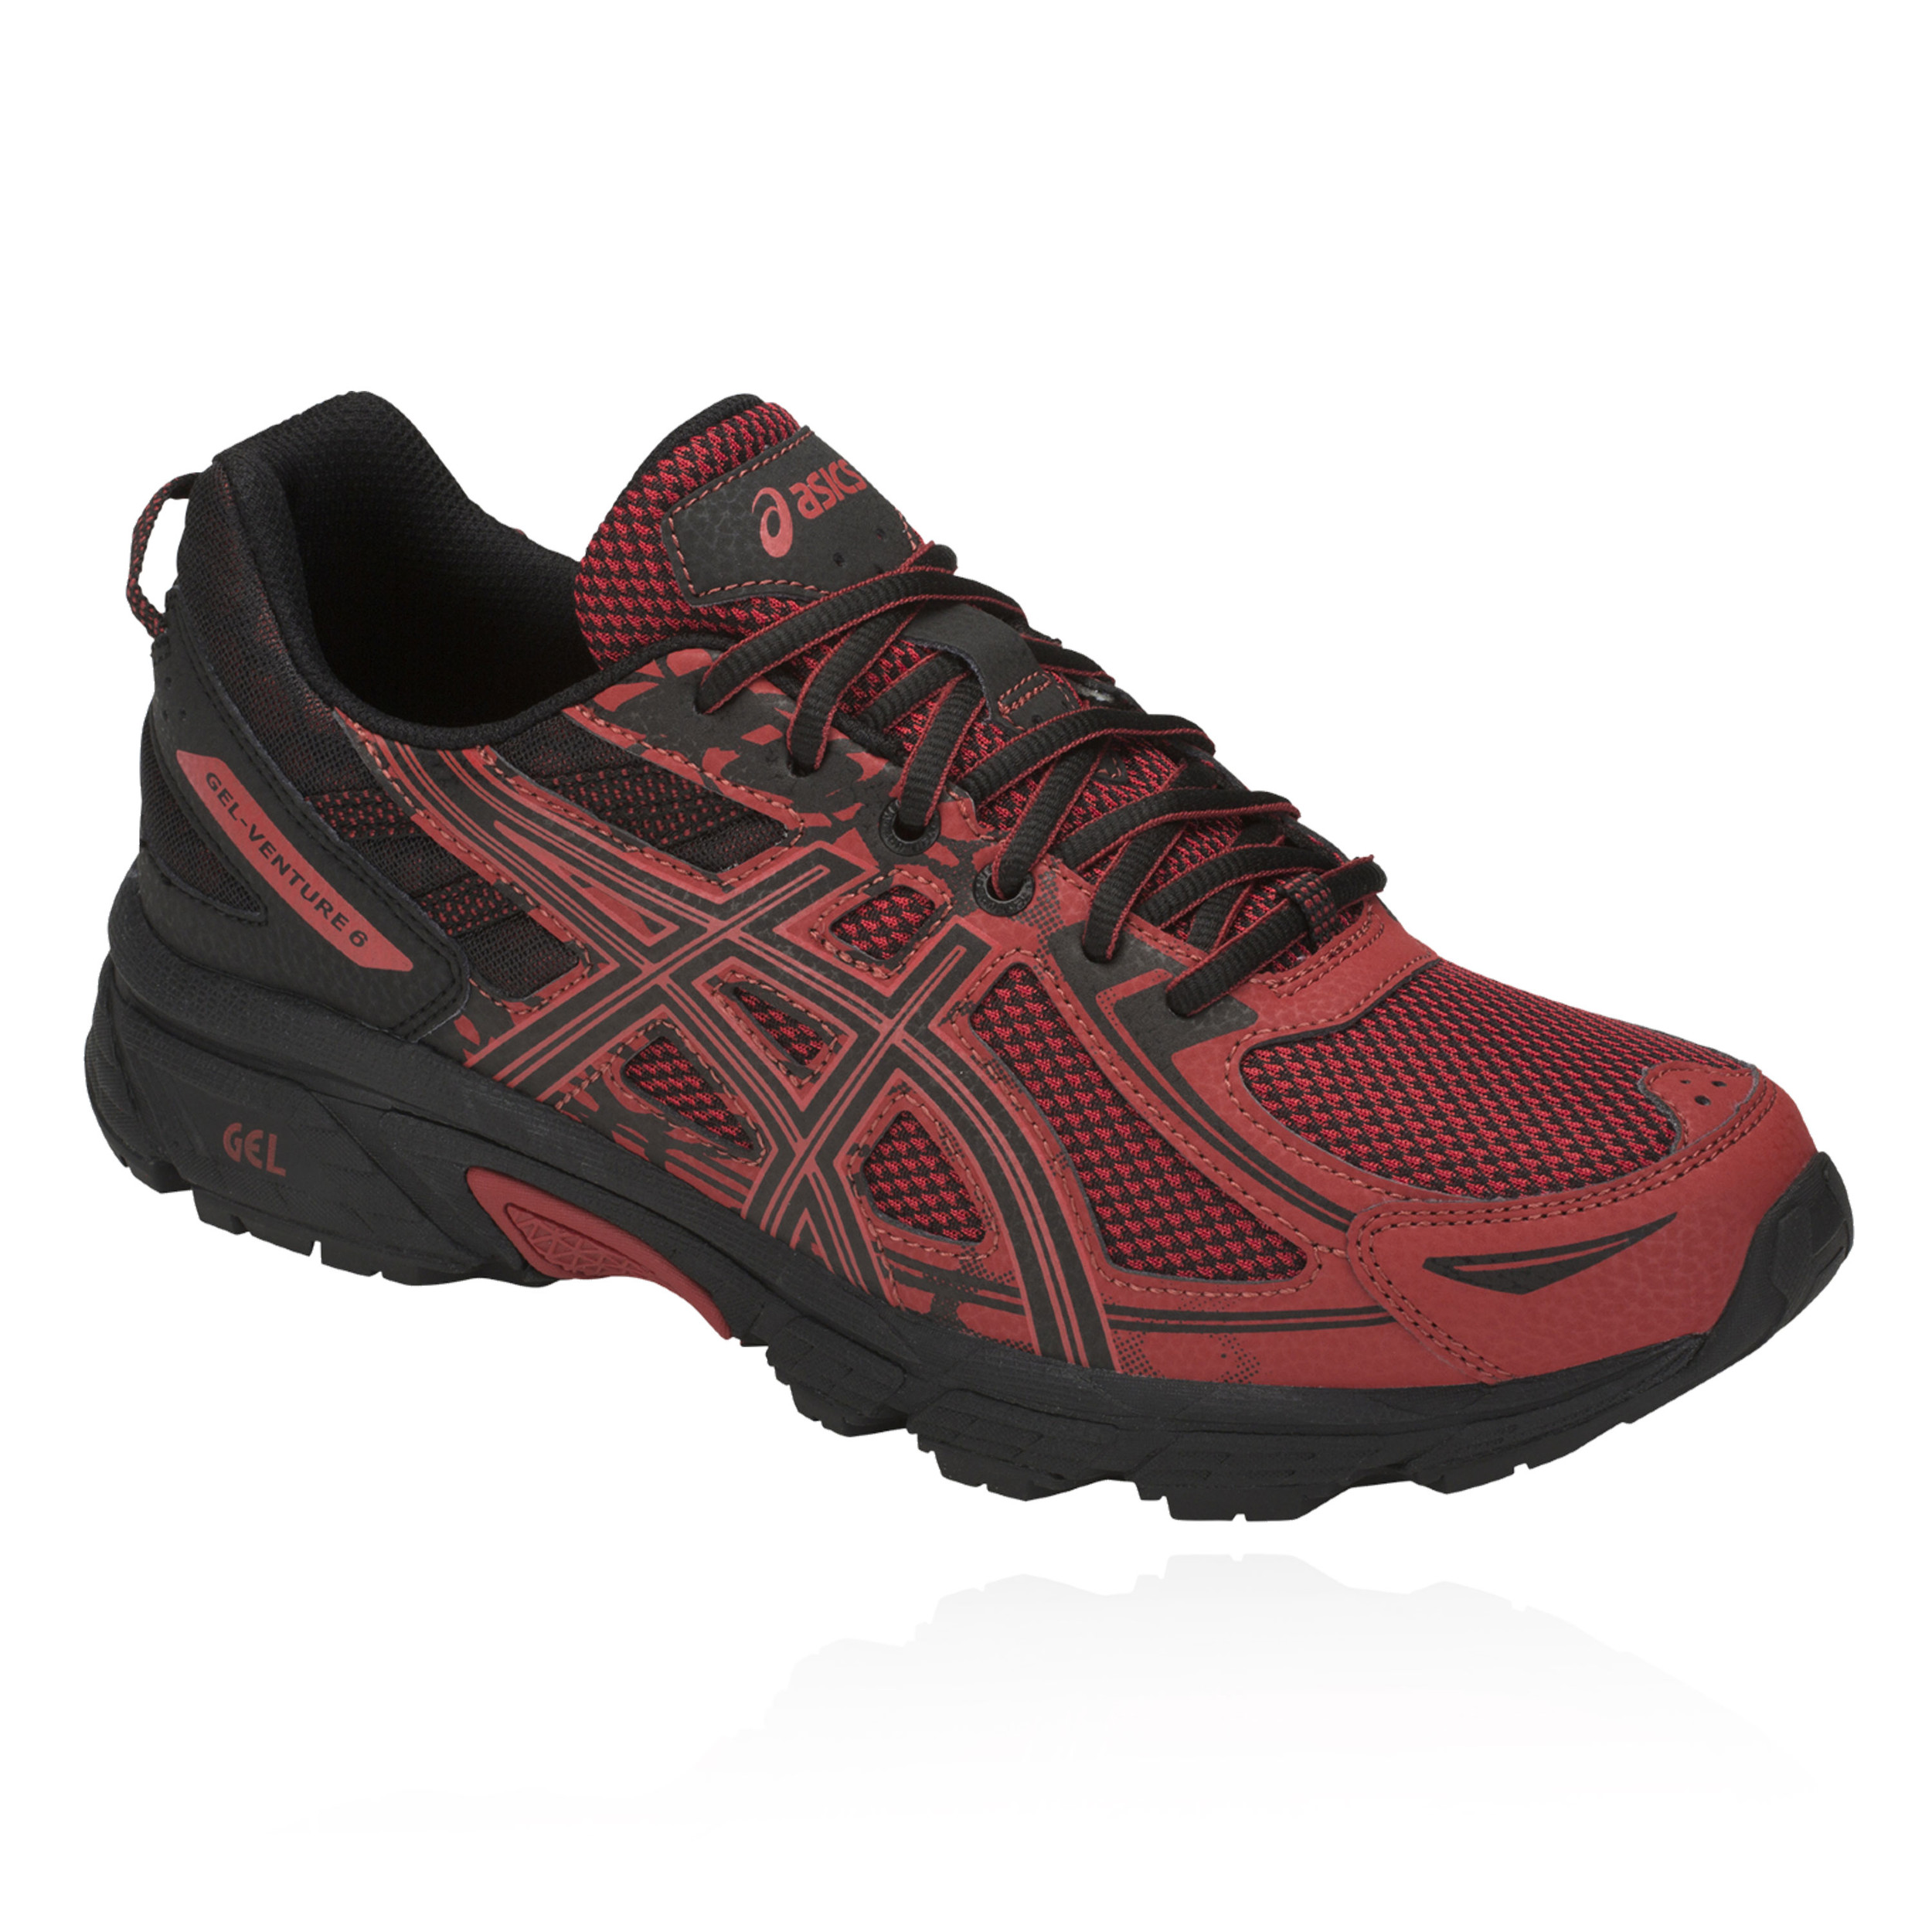 Details about Asics Mens Gel-Venture 6 Trail Running Shoes Trainers Sneakers  Black Red Sports 3611ea85aeca